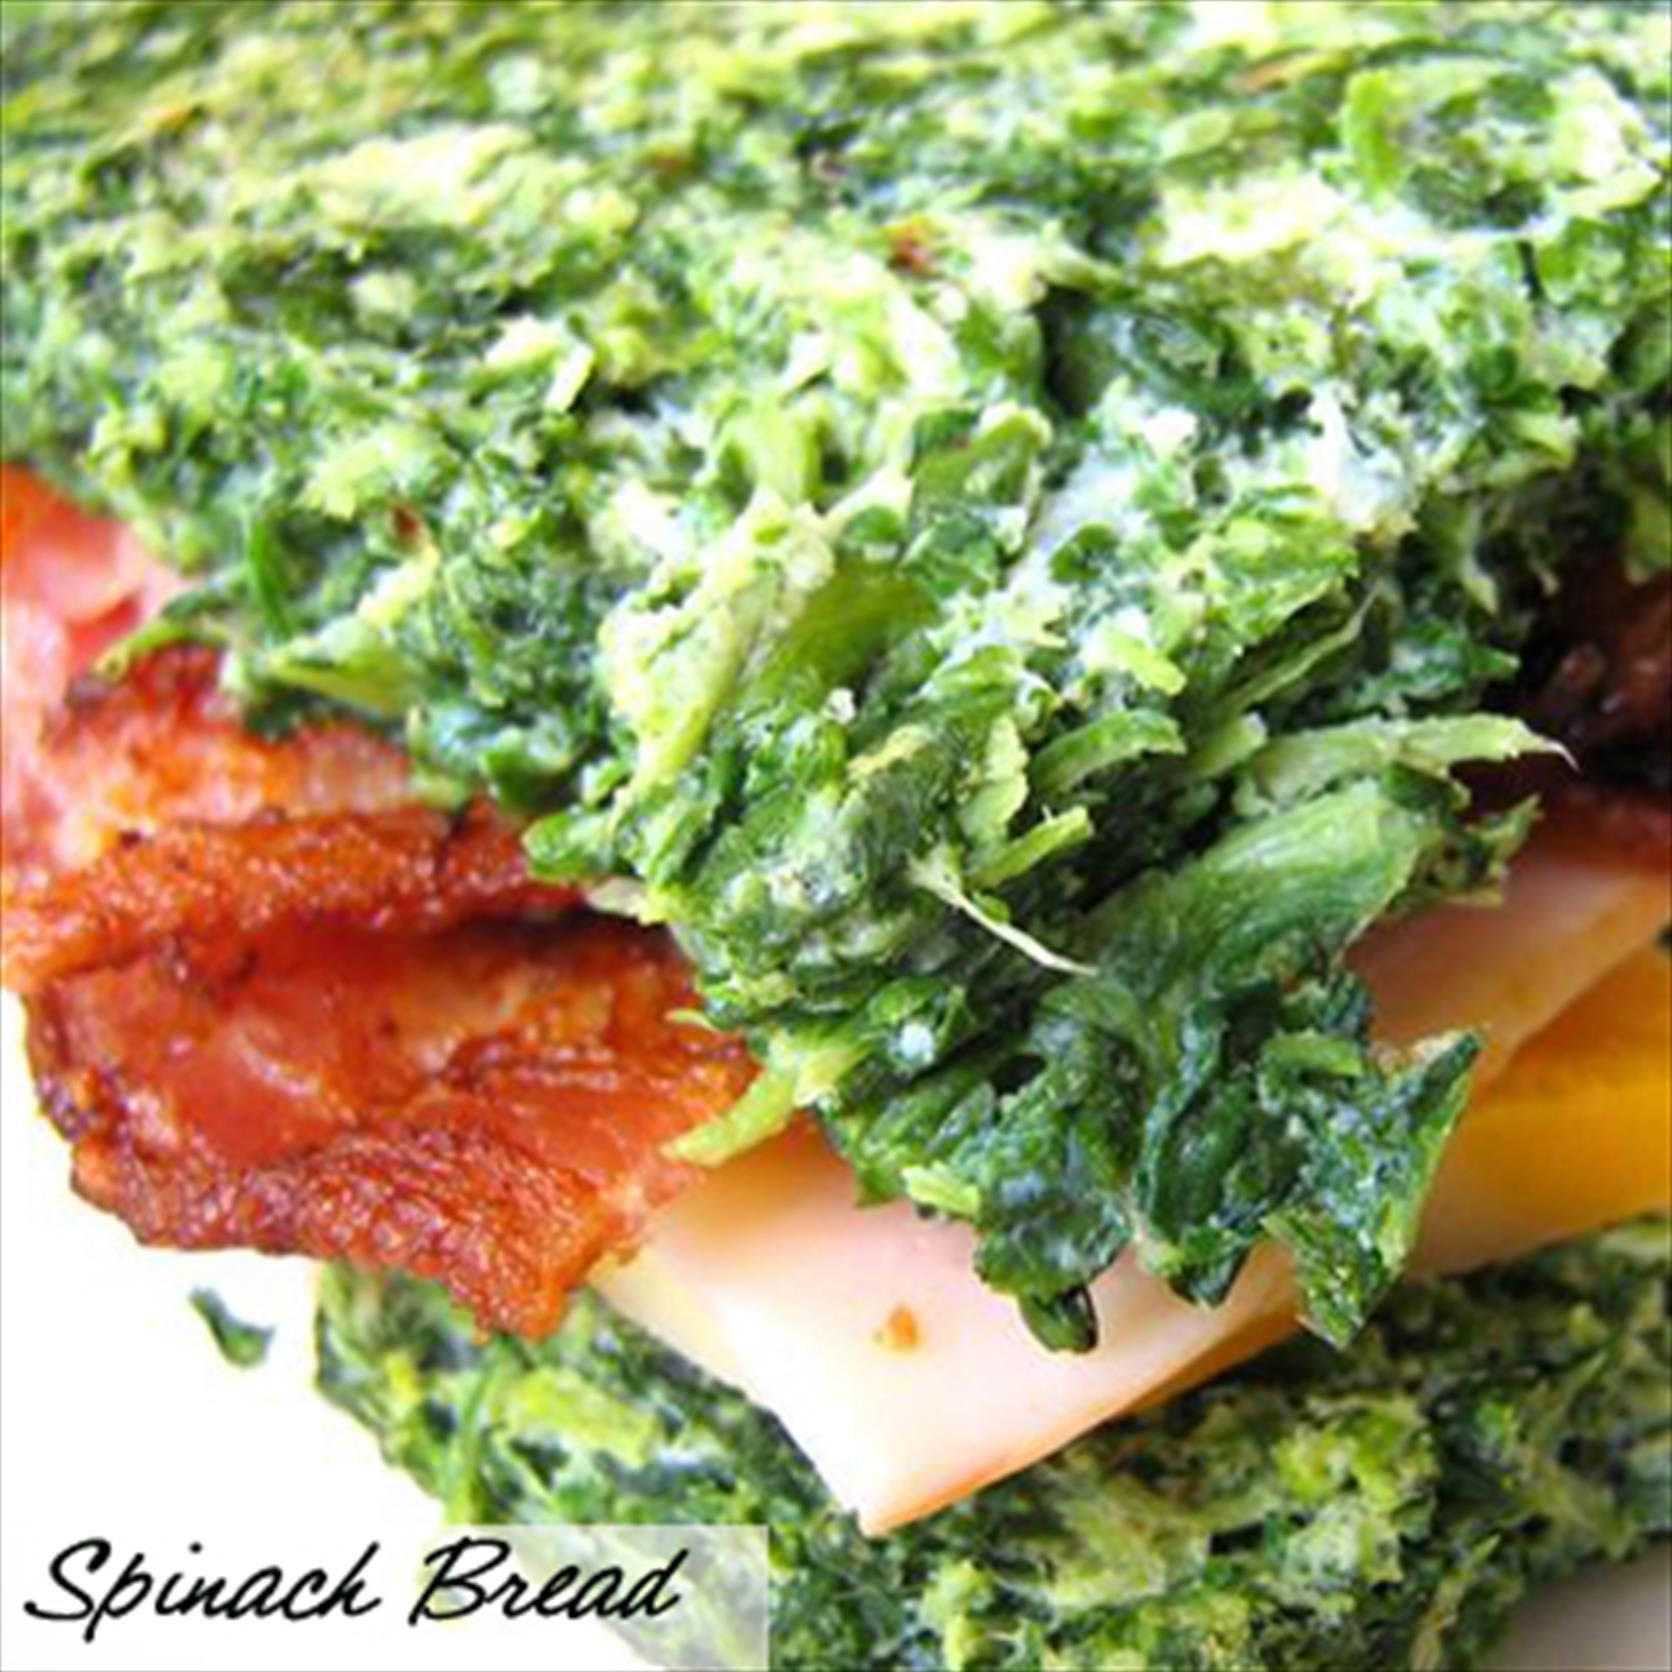 Recipes with a Twist Spinach bread, Food recipes